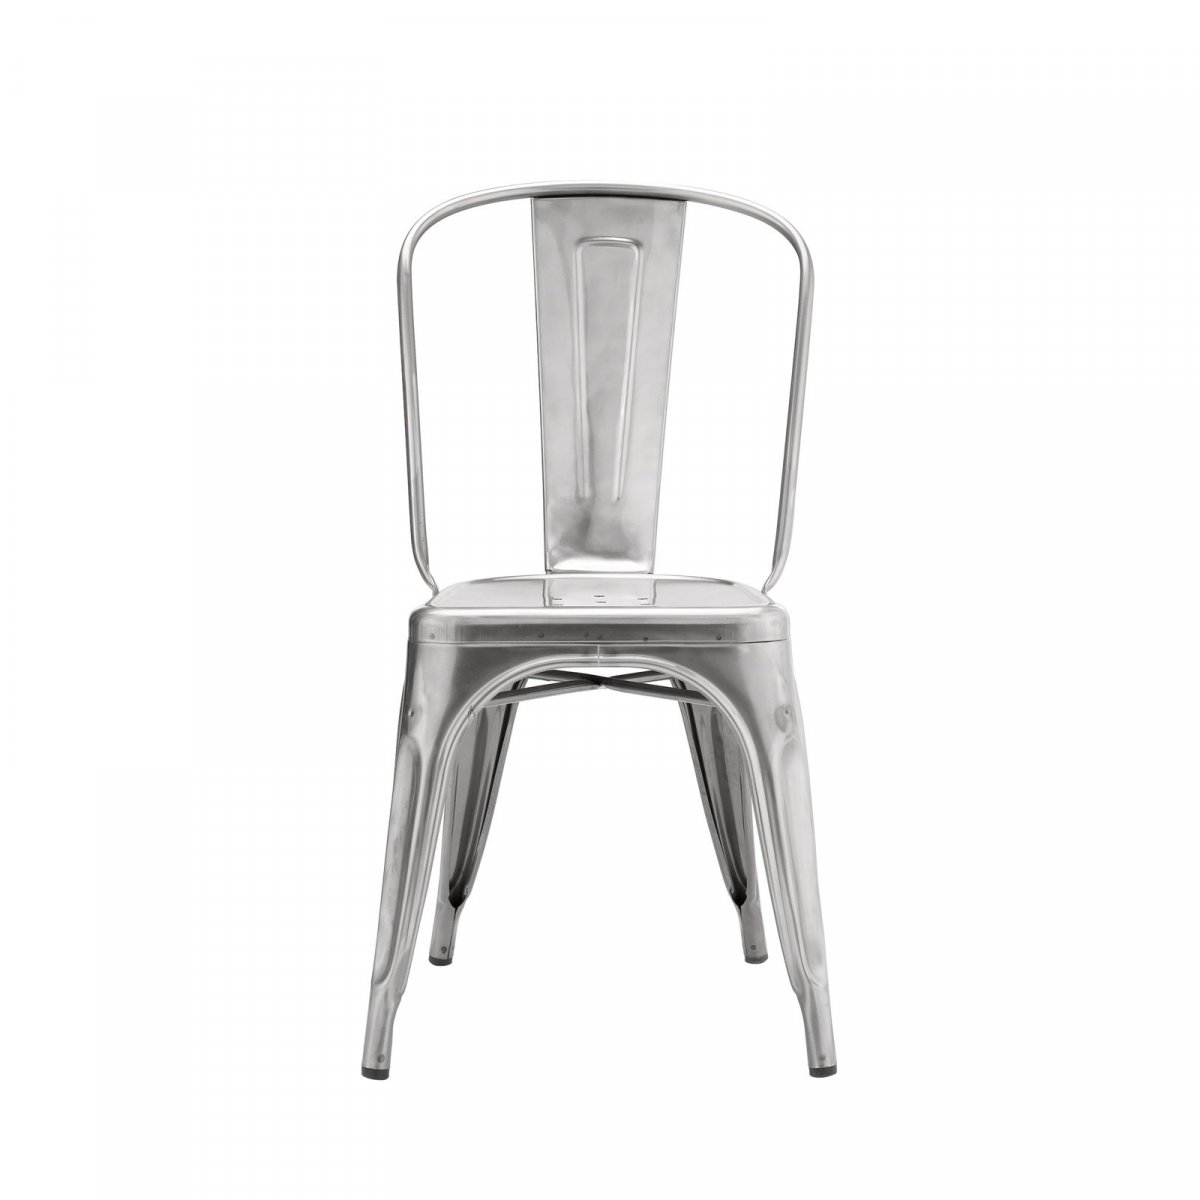 A Chair, front view.